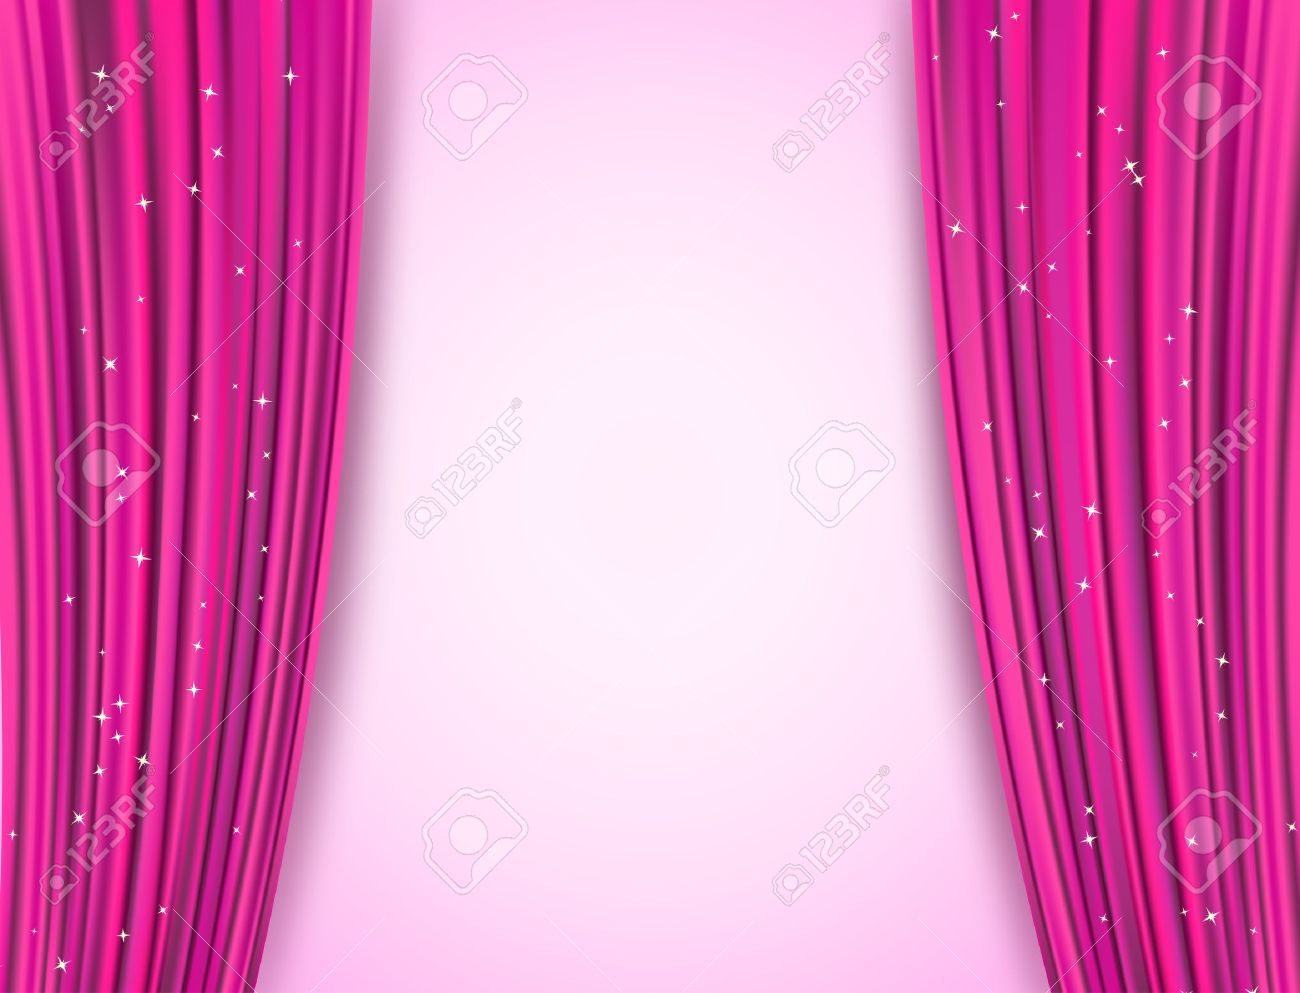 pink theater curtains with glitter. abstract background with opera pink drapes and glittering stars. raster - 55629725